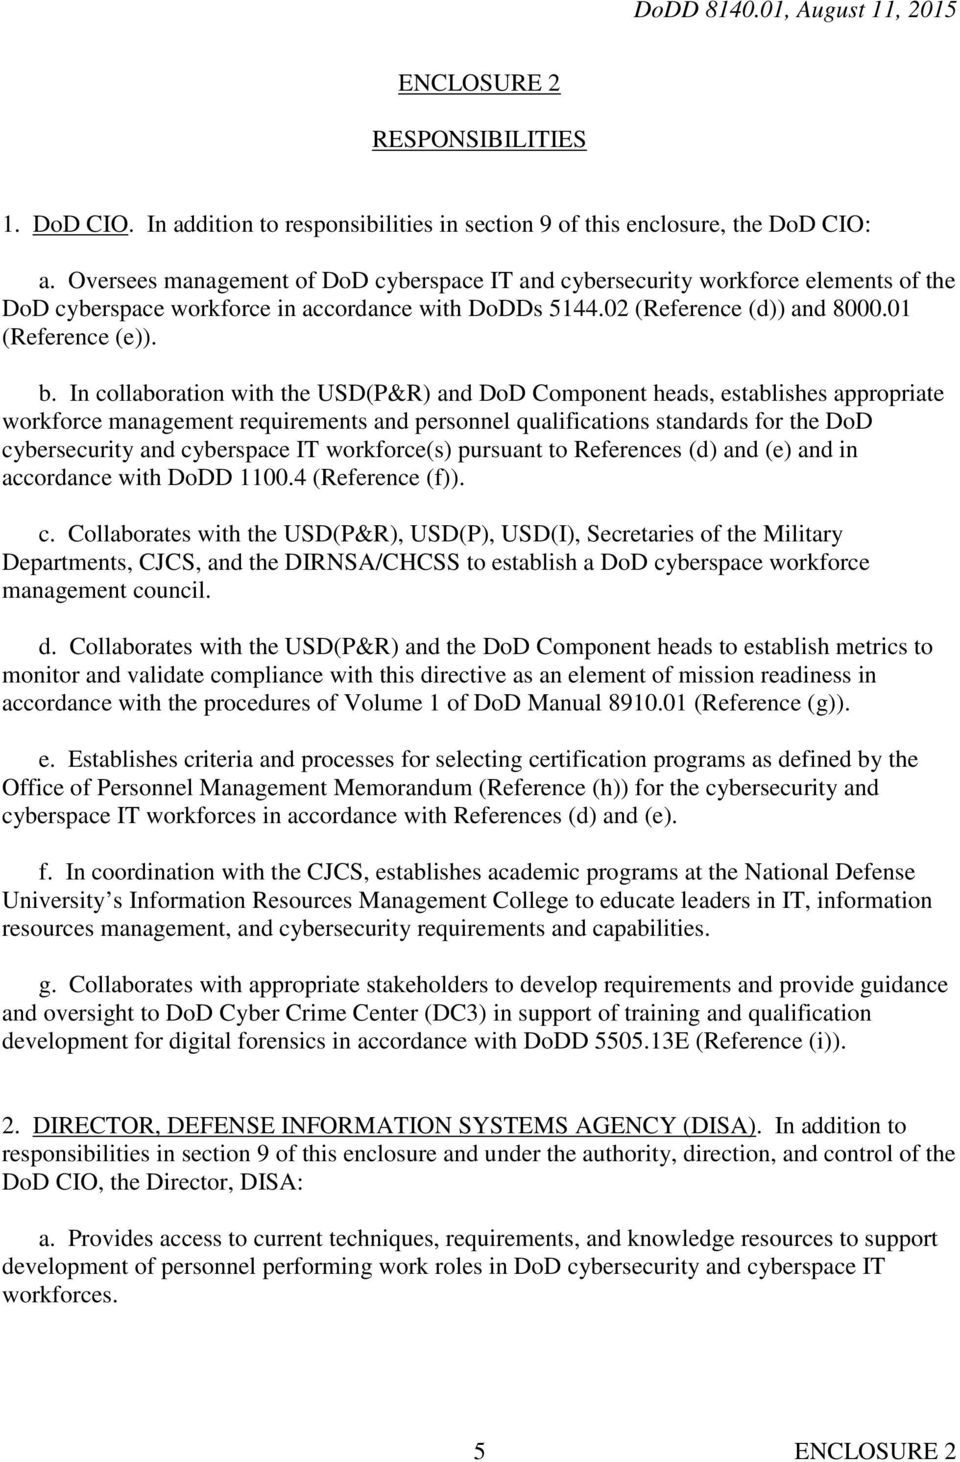 In collaboration with the USD(P&R) and DoD Component heads, establishes appropriate workforce management requirements and personnel qualifications standards for the DoD cybersecurity and cyberspace